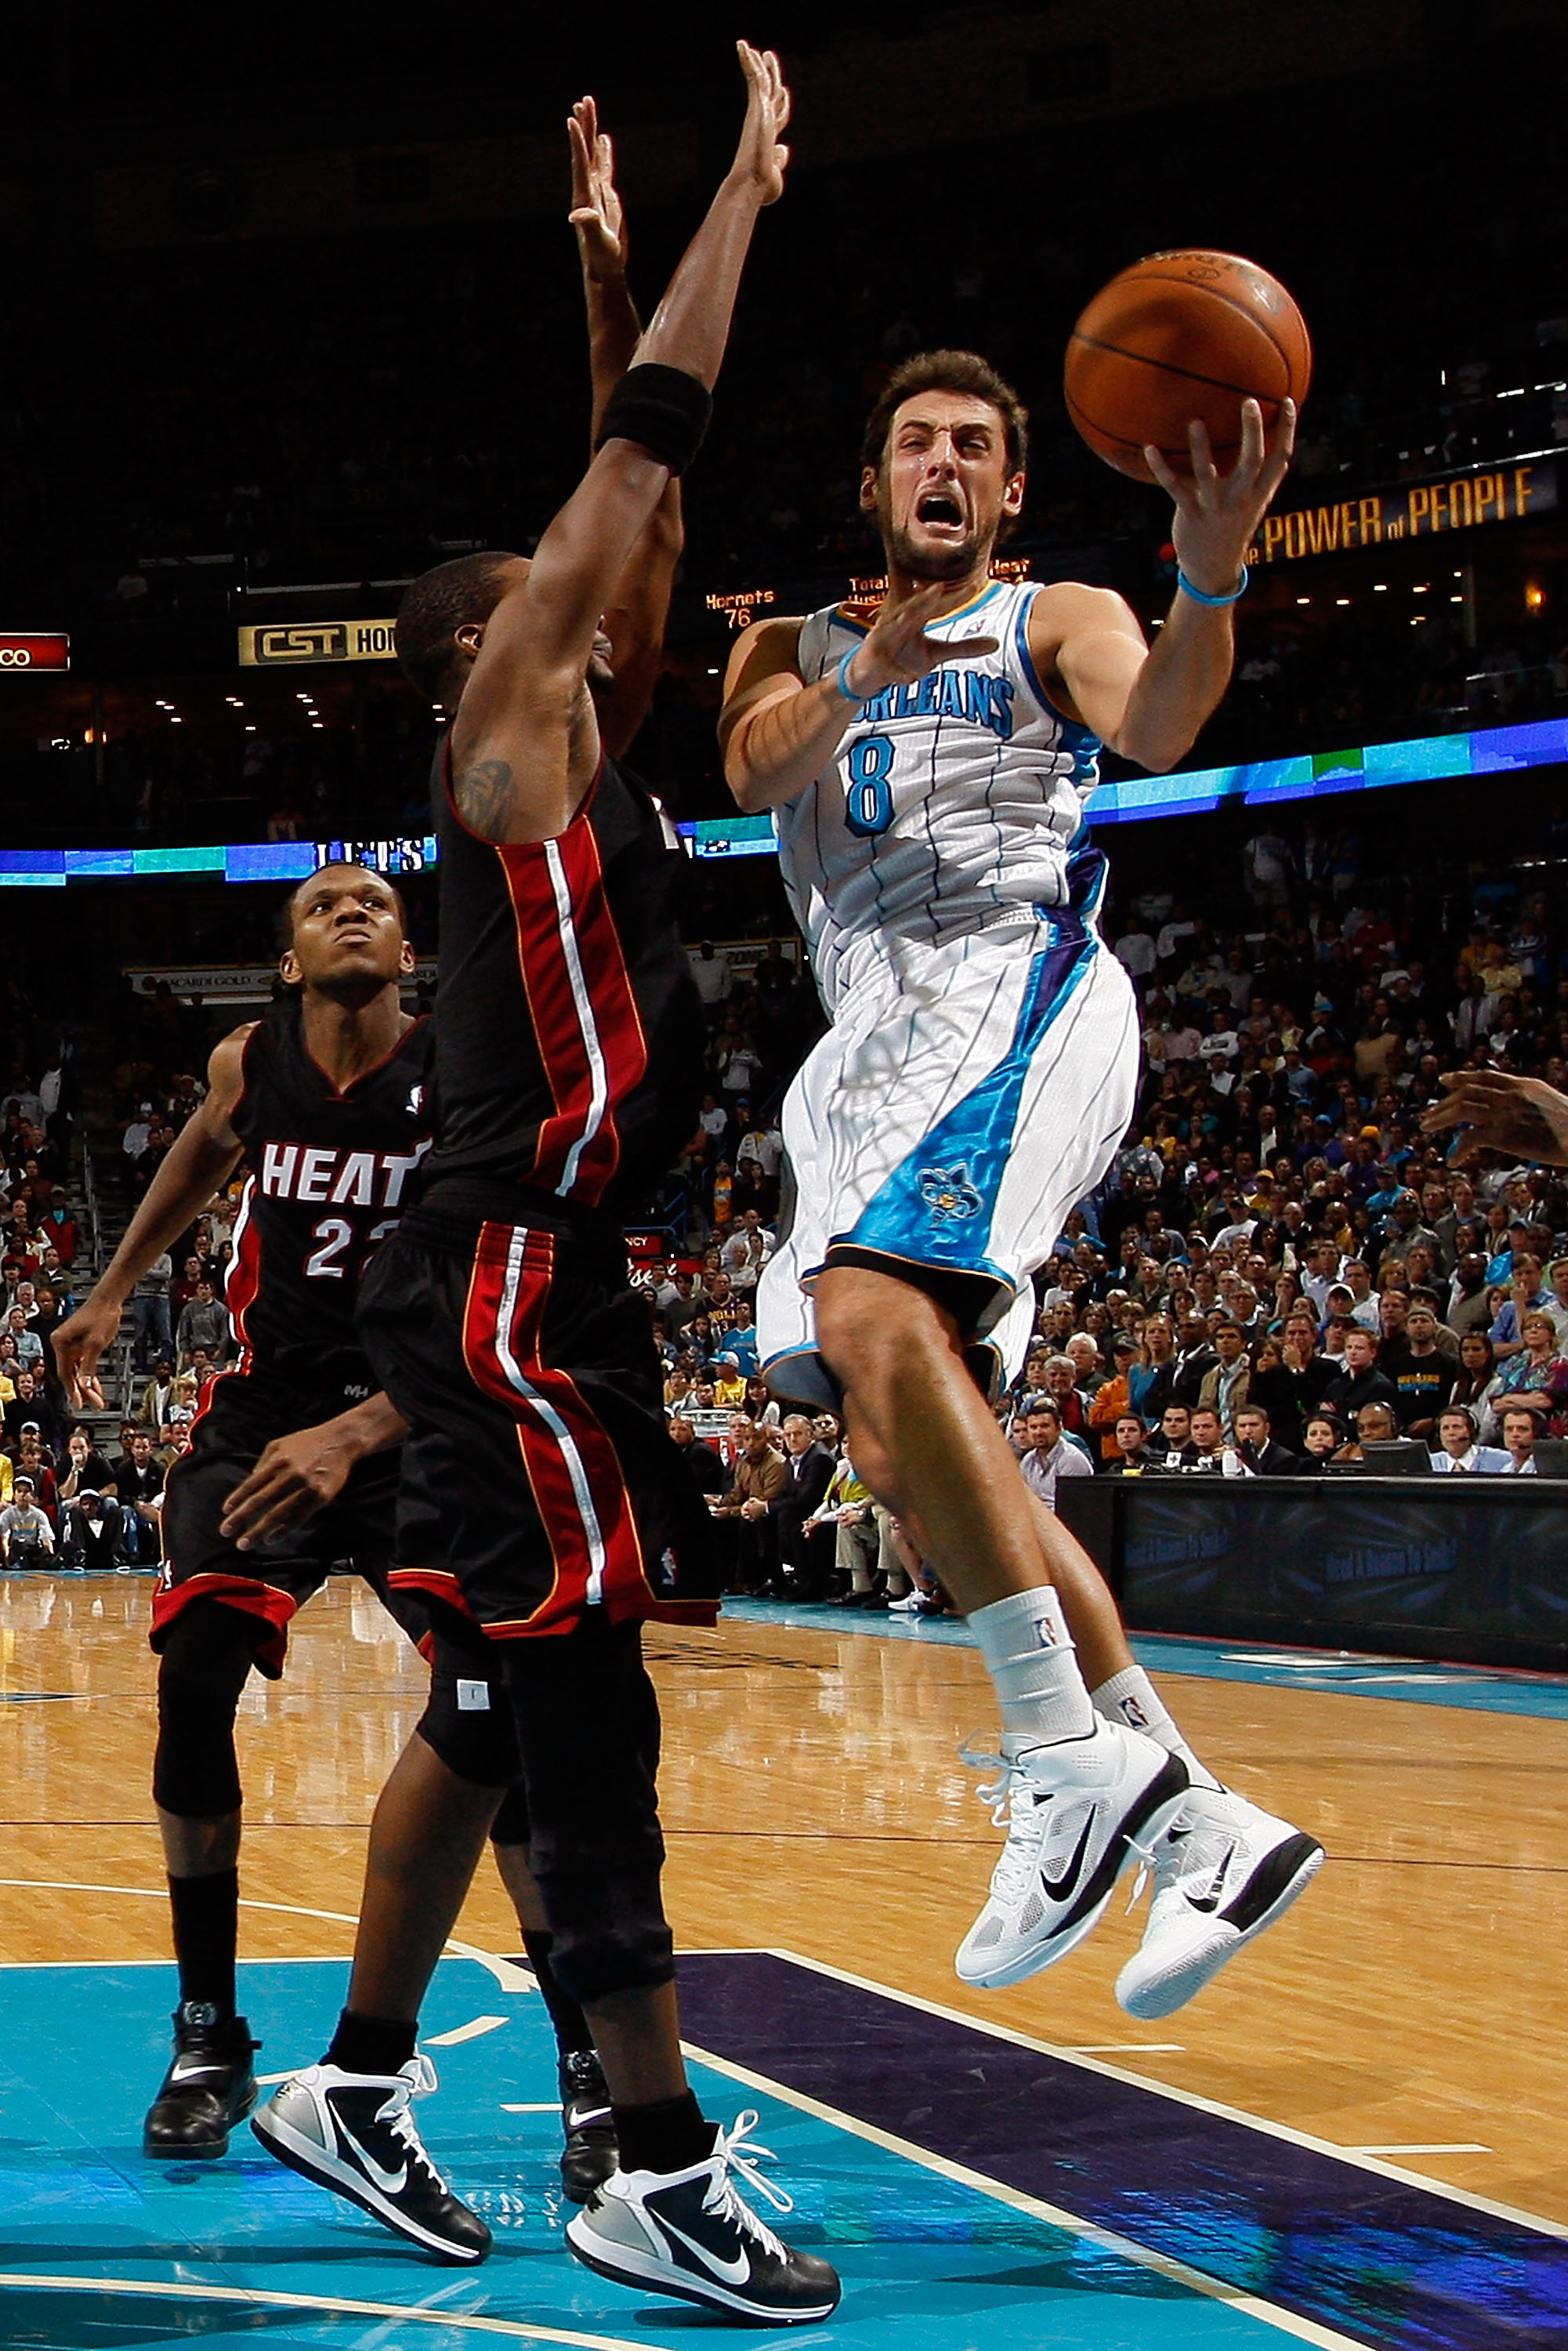 NEW ORLEANS - NOVEMBER 05:  Marco Belinelli #8 of the New Orleans Hornets shoots the ball over Chris Bosh #1 of the Miami Heat at the New Orleans Arena on November 5, 2010 in New Orleans, Louisiana.  The Hornets defeated the Heat 96-93.  NOTE TO USER: Use